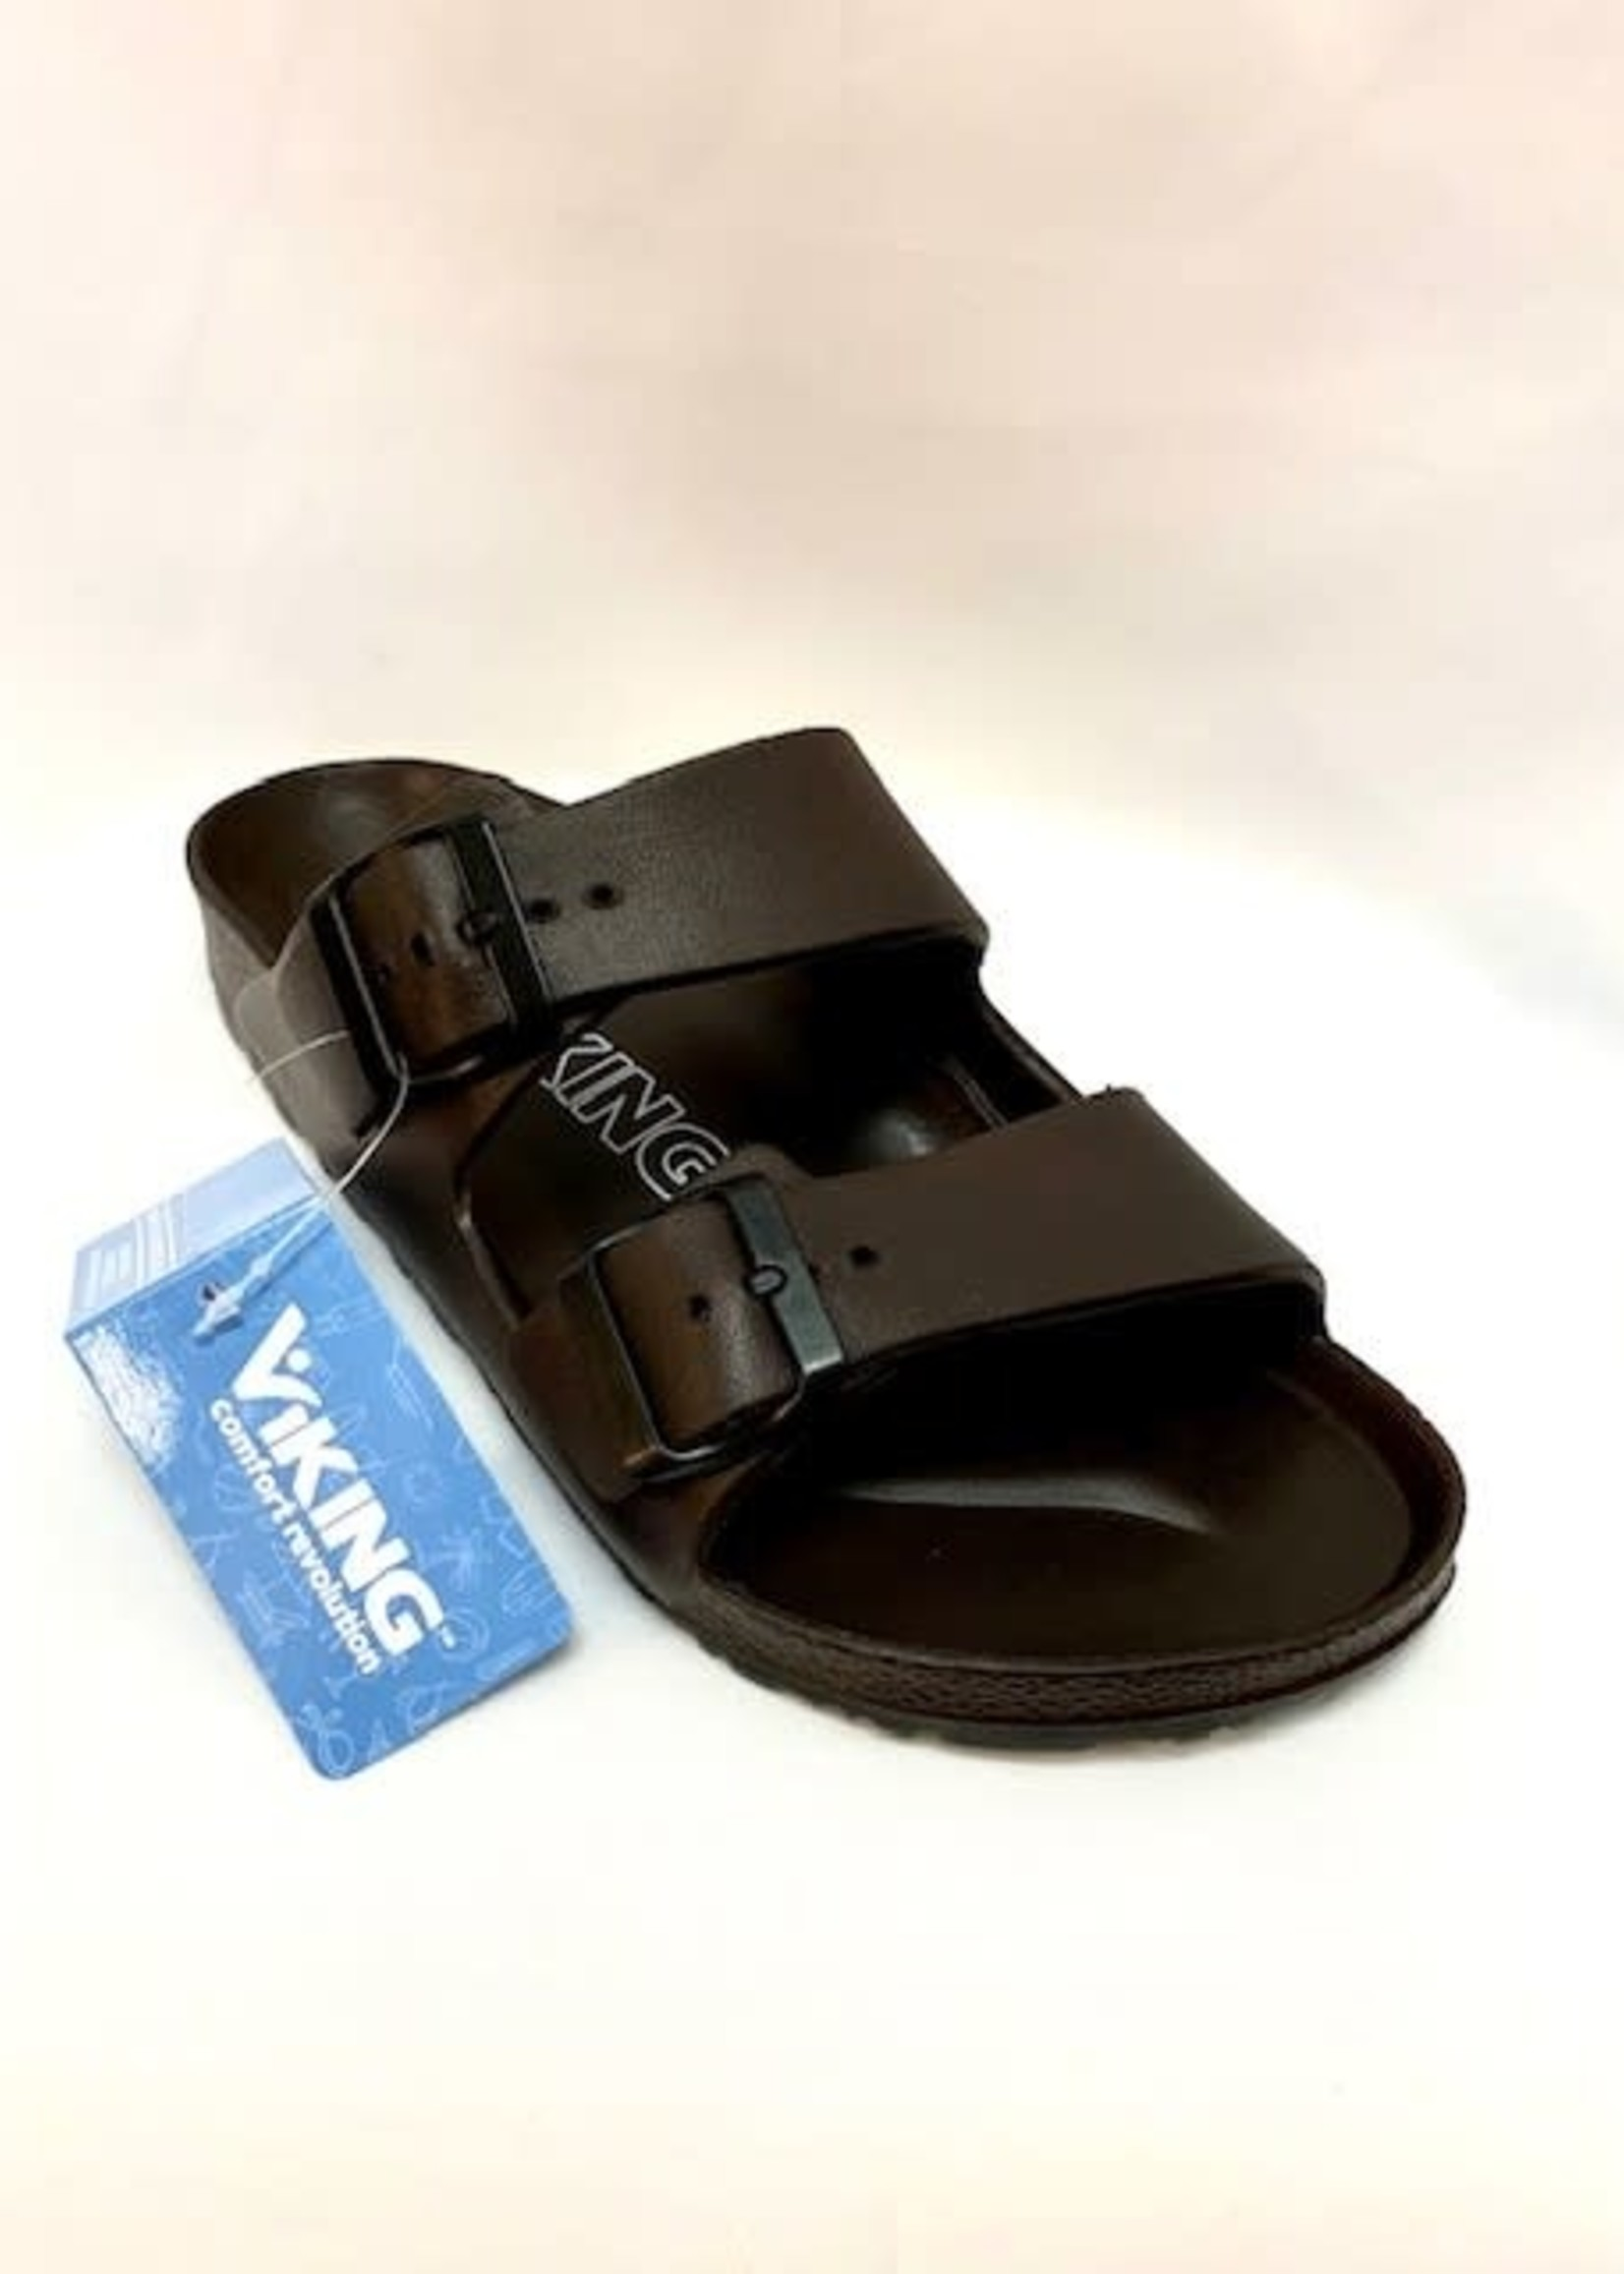 Viking Austin Sandals, in two color choices